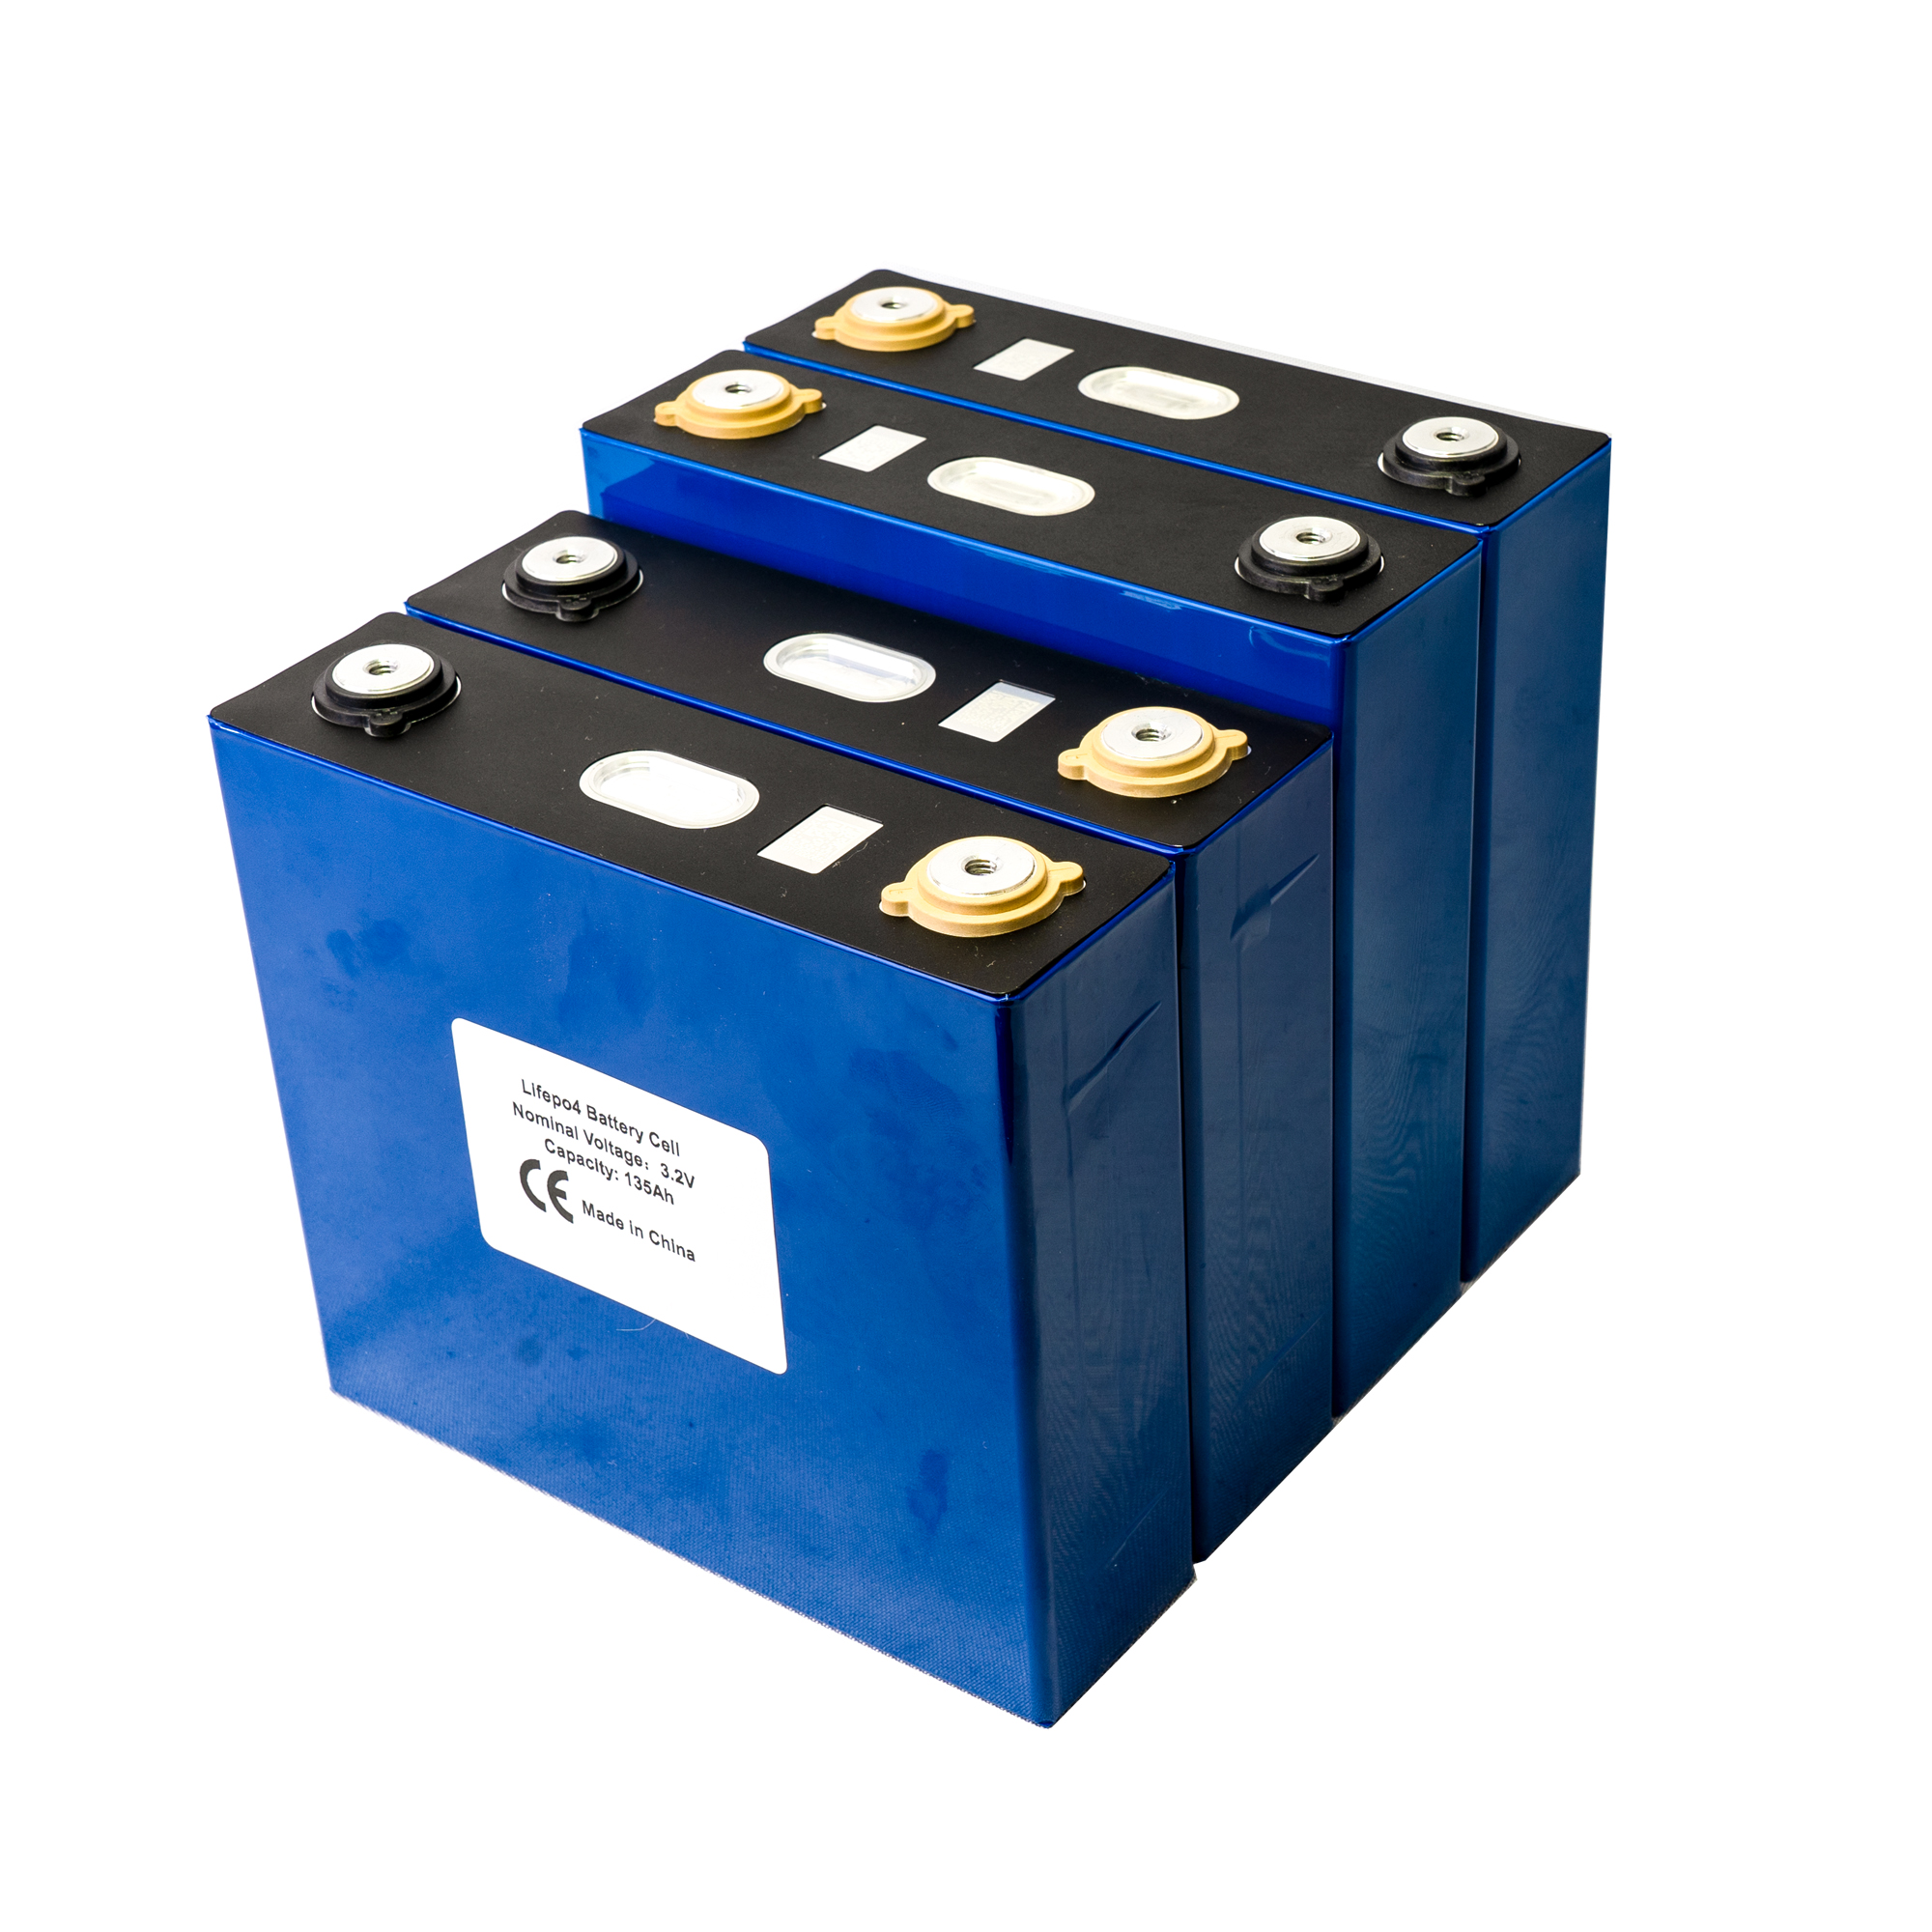 4PCS GRADE A 3.2V 130AH Lifepo4 Battery Lithium Iron Phosphate Cell Solar12V  24V Cells Not 120AH 150Ah 200AH EU US TAX FREE